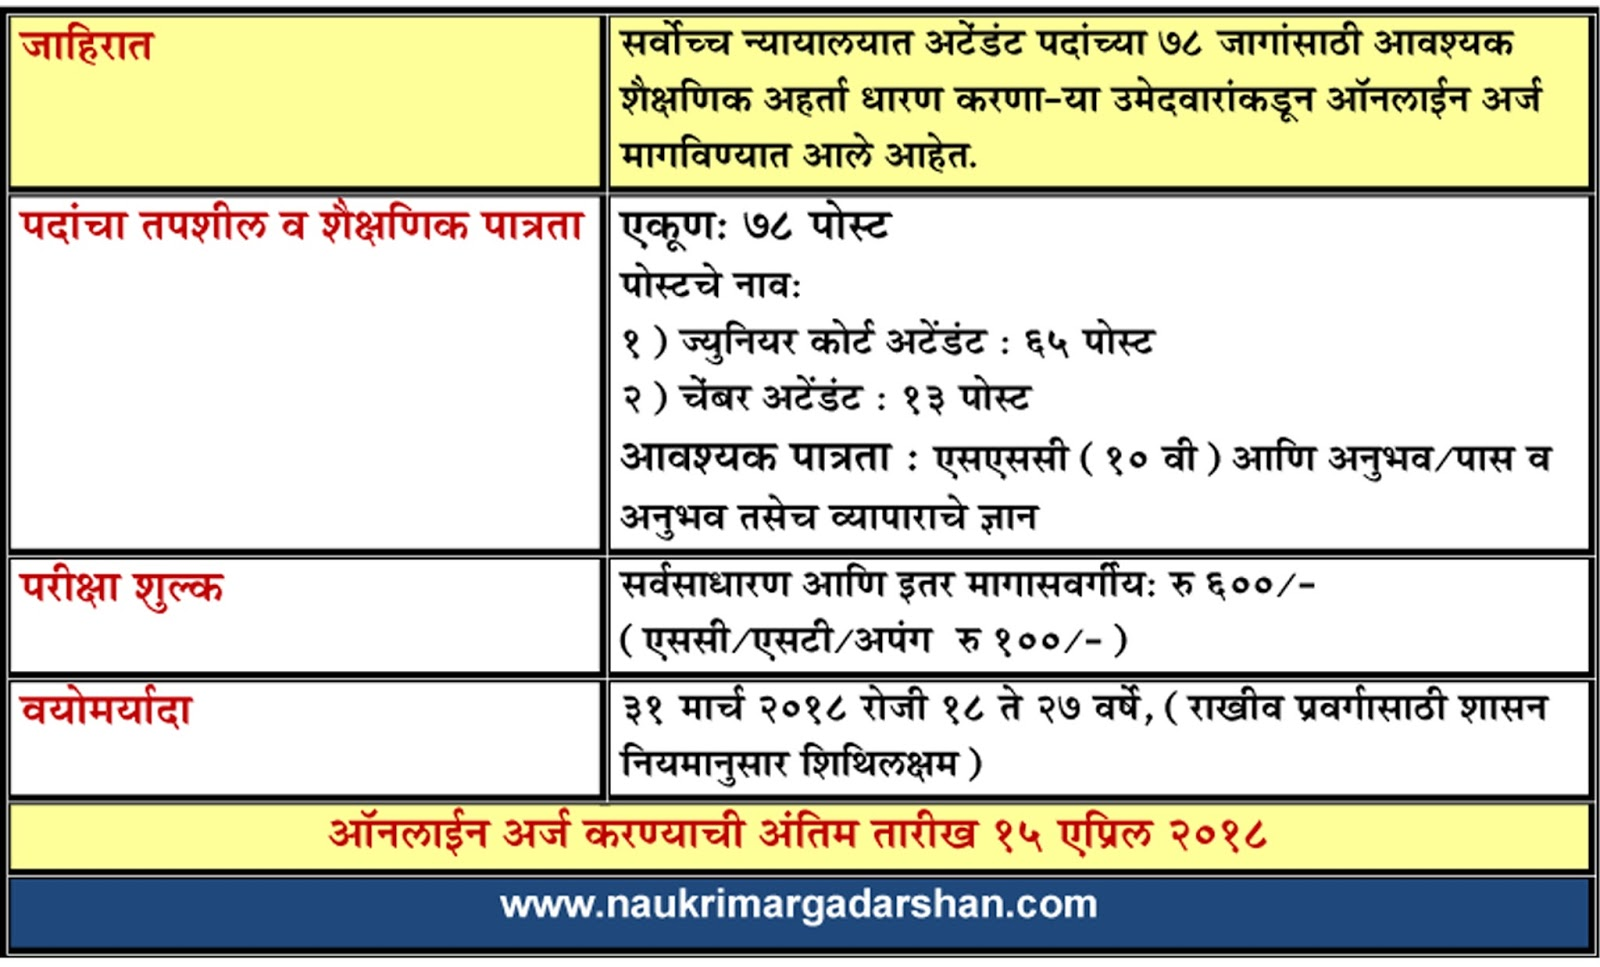 court vacancies, court attendant jobs, naukri margadarshan